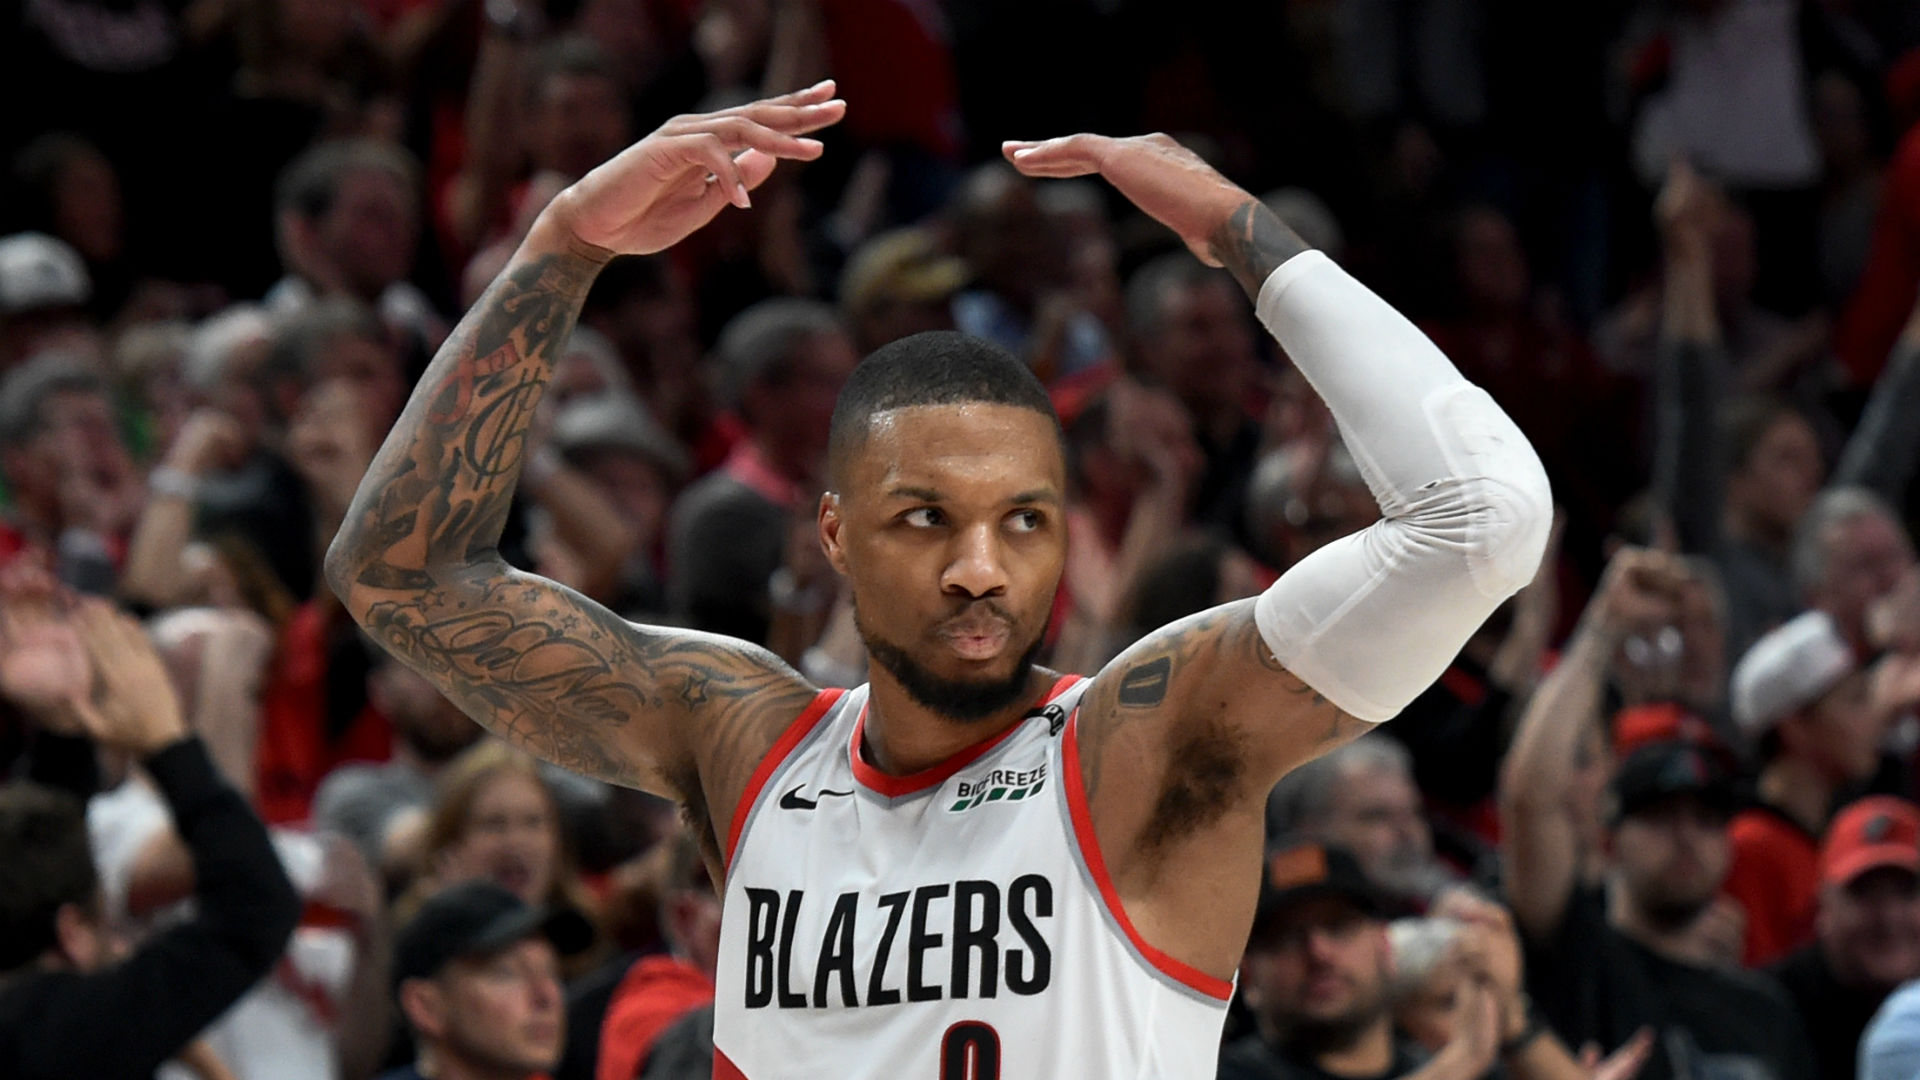 A series doesn't start until you win on the road, warns Lillard